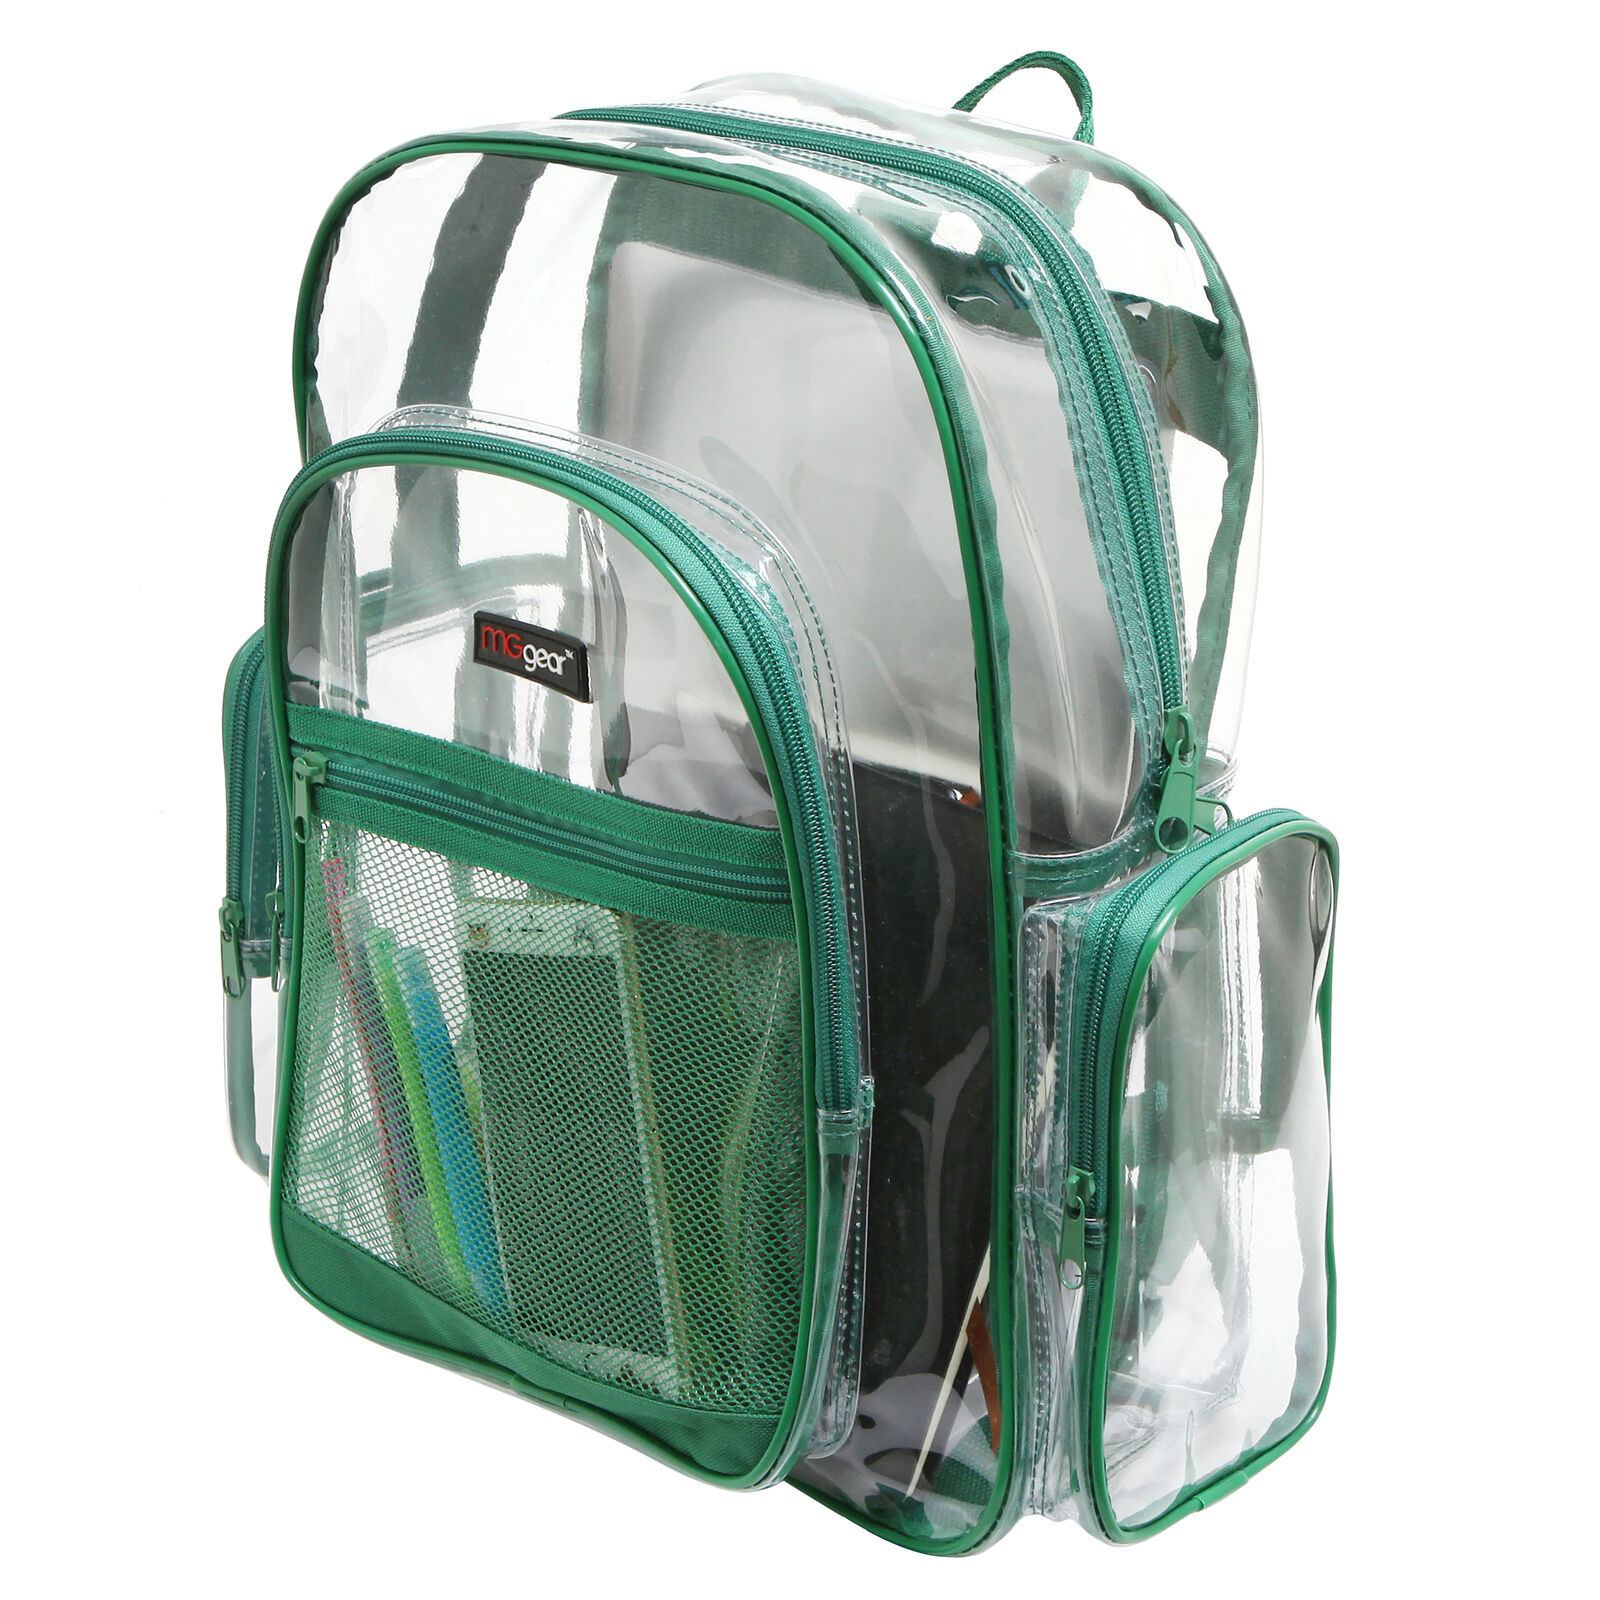 Clear Backpacks, Heavy Duty Transparent Backpack for Work, School, Green Trim